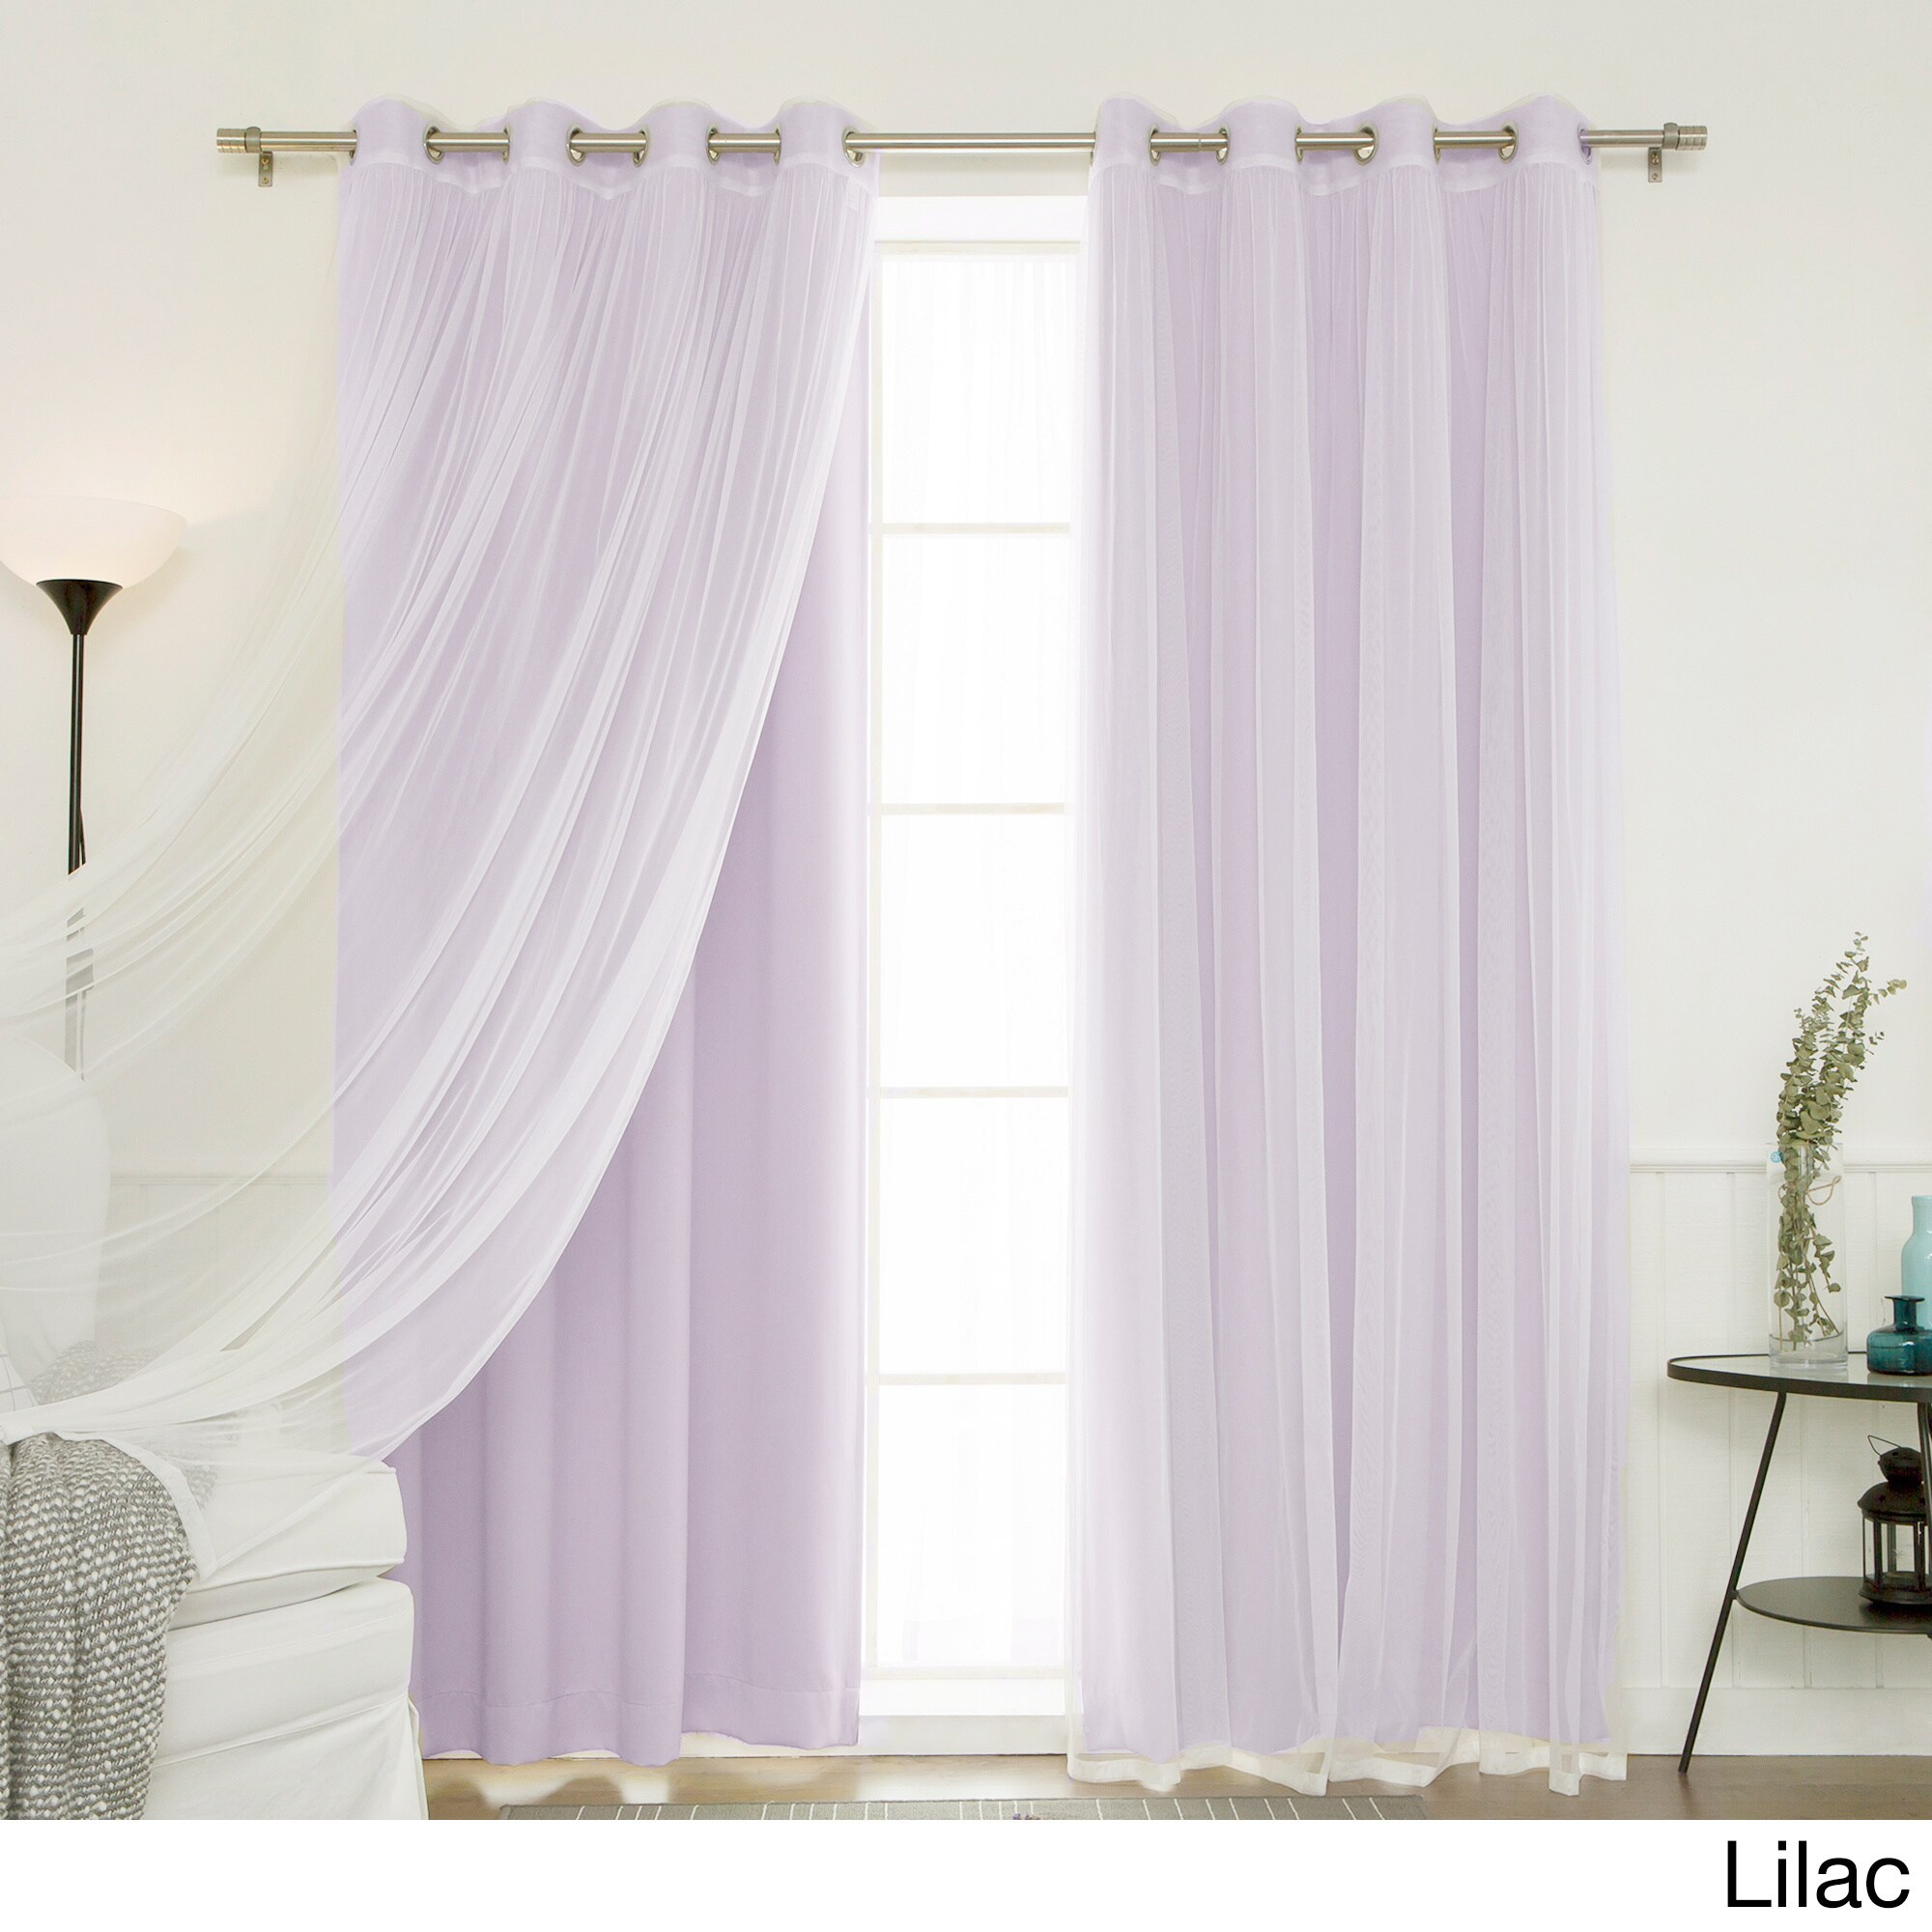 Lavender Sheer Curtains Aurora Home Mix And Match Blackout Tulle Lace Sheer 4 Piece Curtain Panel Set